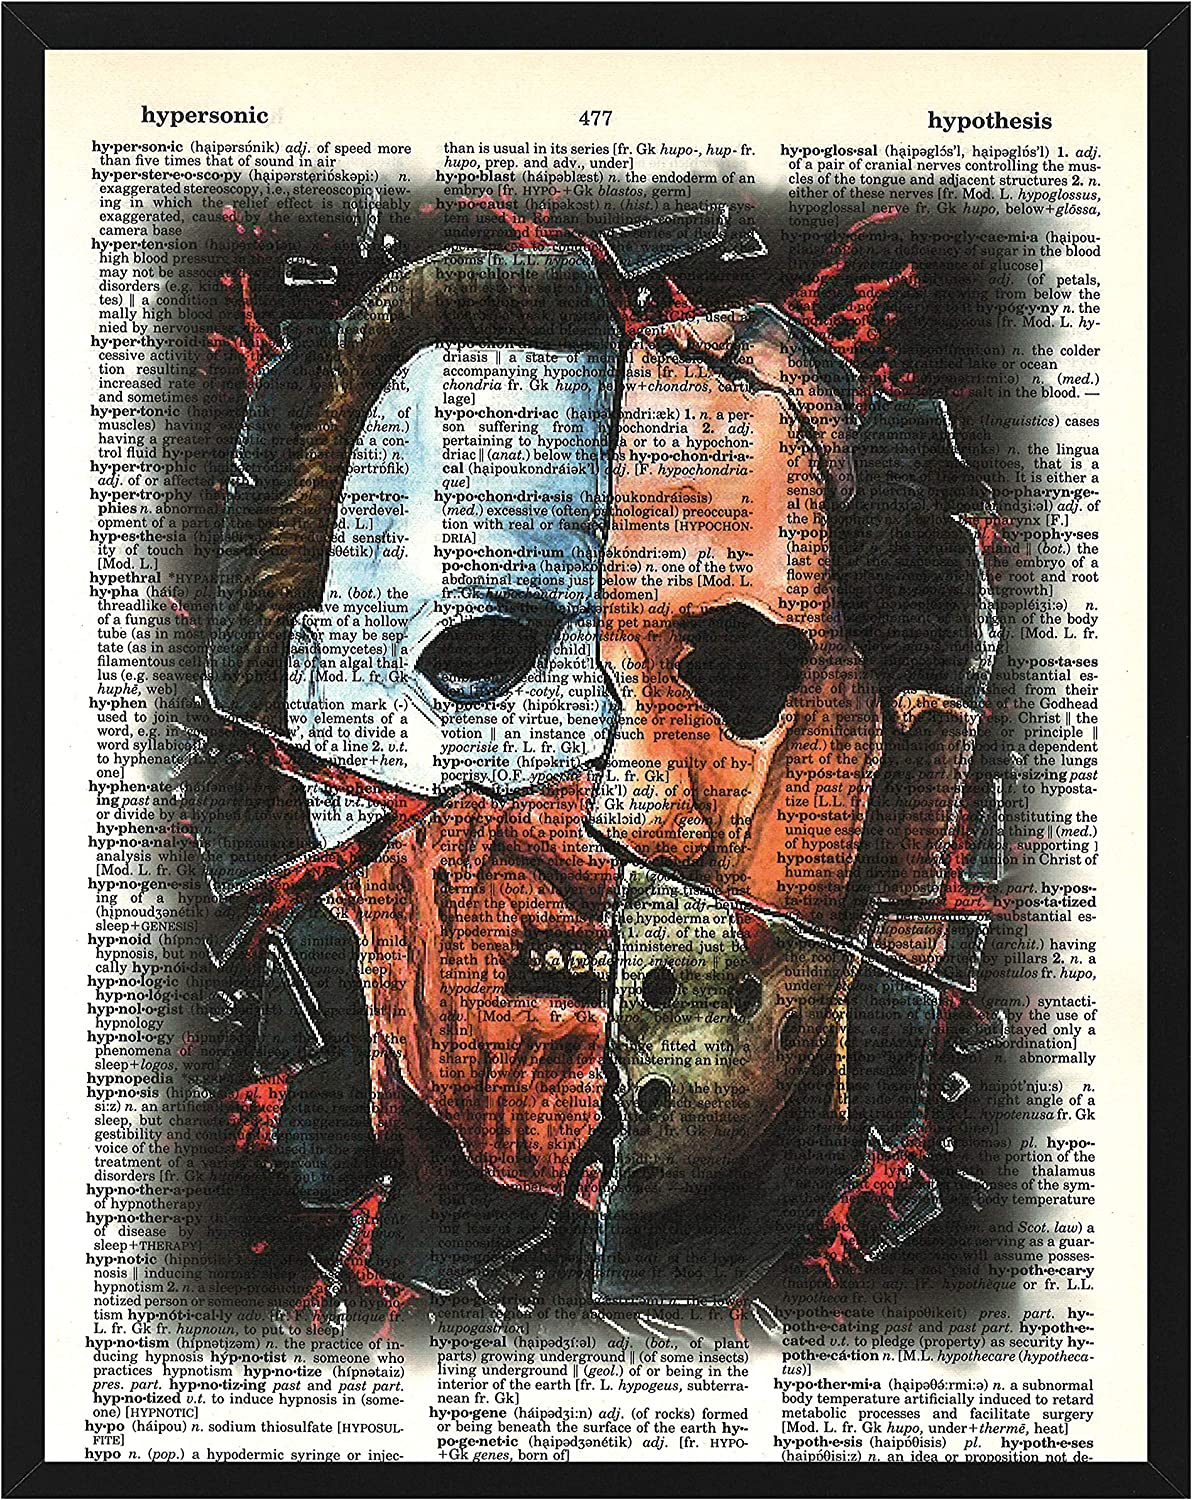 Classic Horror Movies Wall Decor Horror Movies Character Collage Featuring Michael Myers, Jason Voorhees, Freddy Krueger and Leather Face Dictionary Art Print 8 x 10